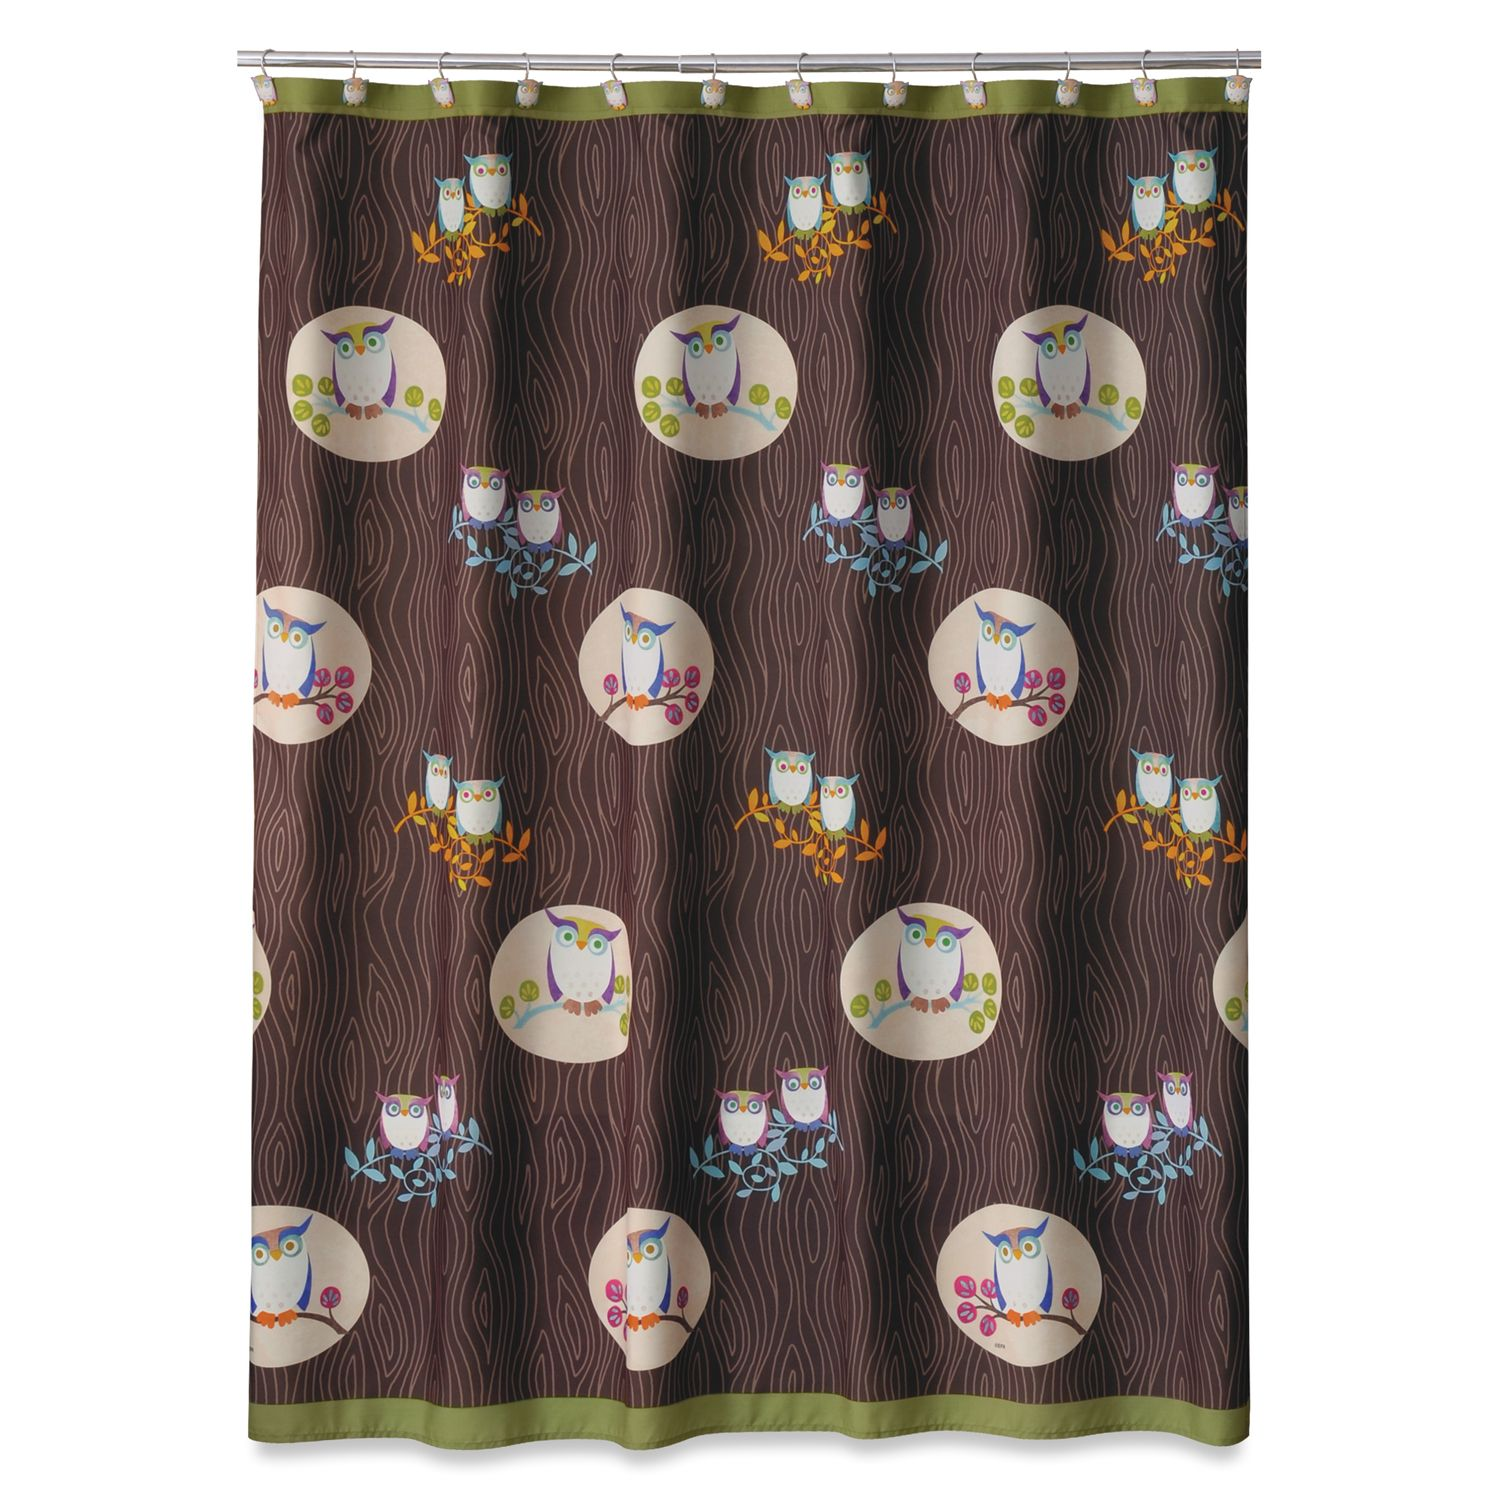 Attractive Allure Home Creations Awesome Owls Fabric Shower Curtain